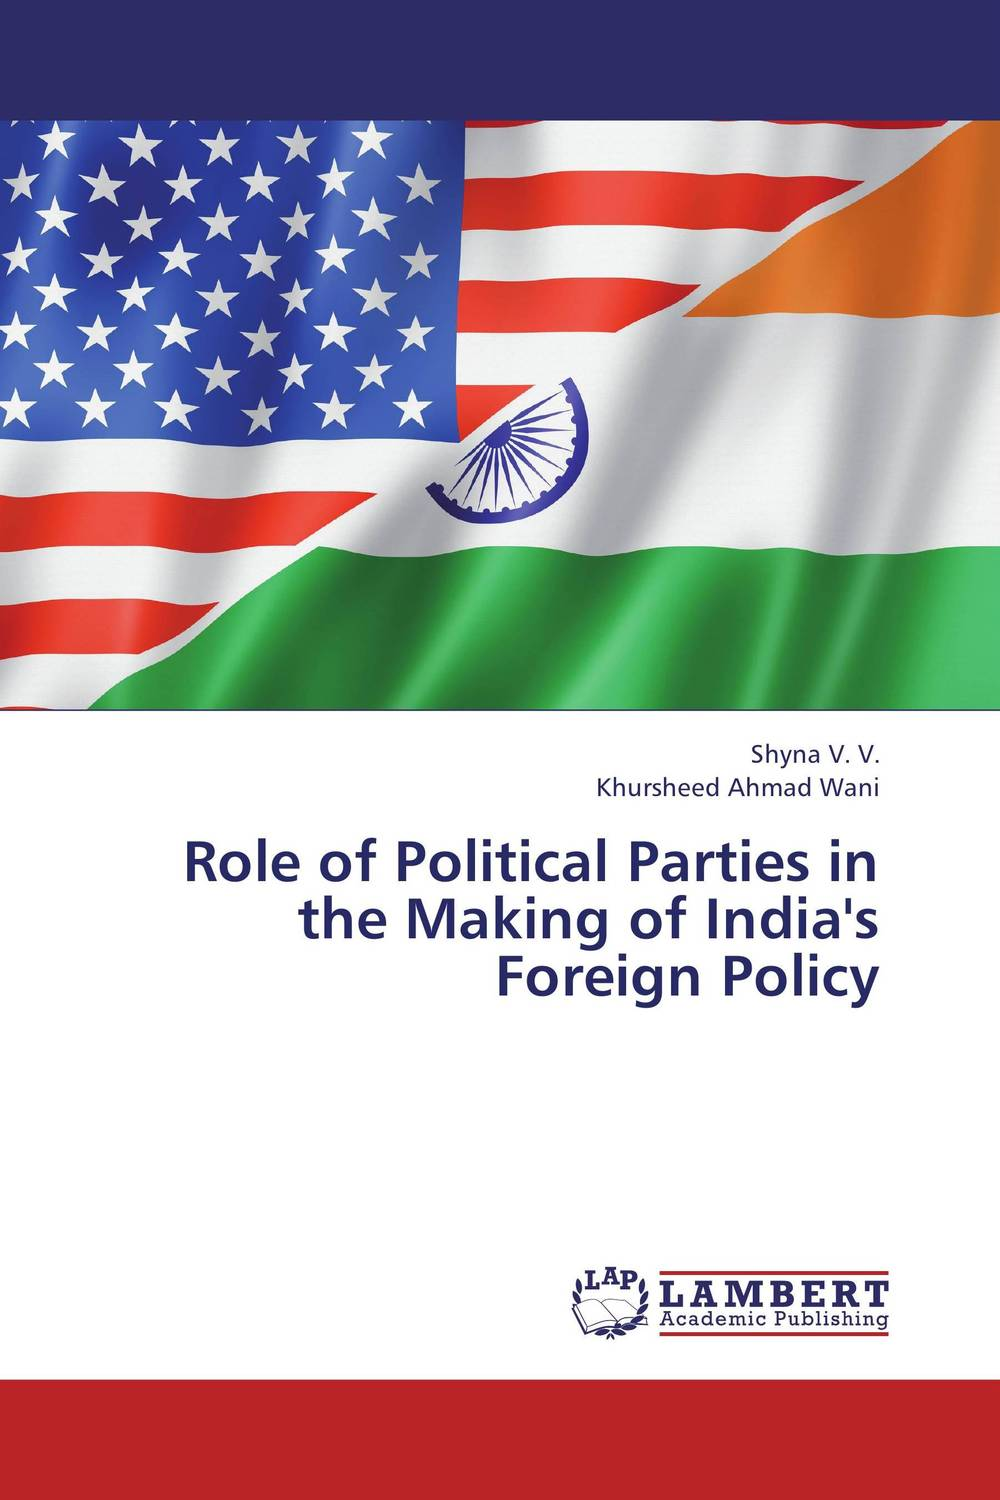 Role of Political Parties in the Making of India's Foreign Policy identity of political parties in albania